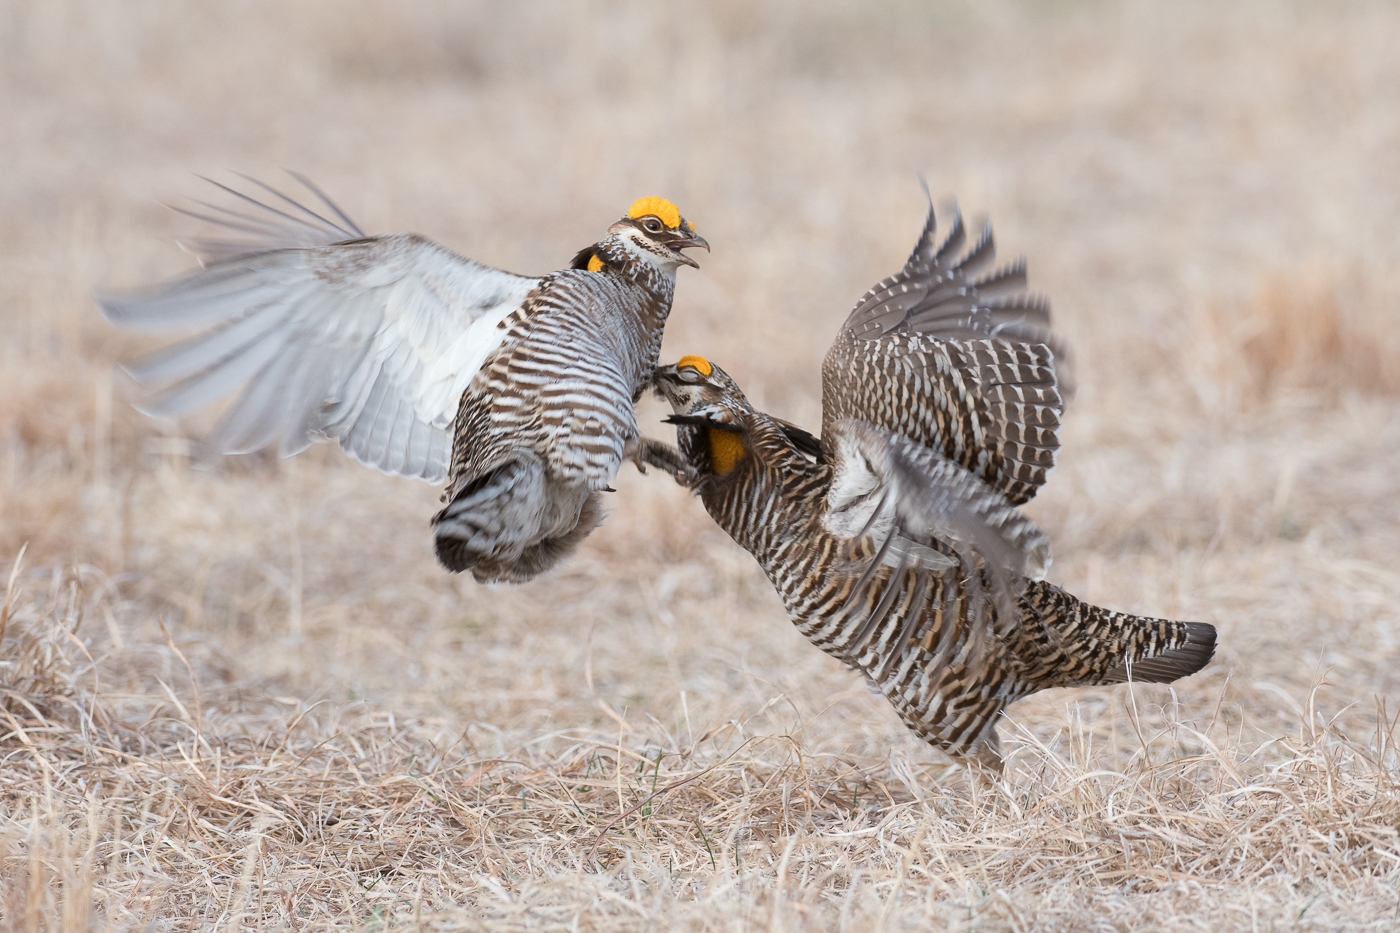 Chicken Fight  (Tympanuchus cupido) - Moorhead, MN    Nikon D500 + Nikon 200-400mm f/4 VR